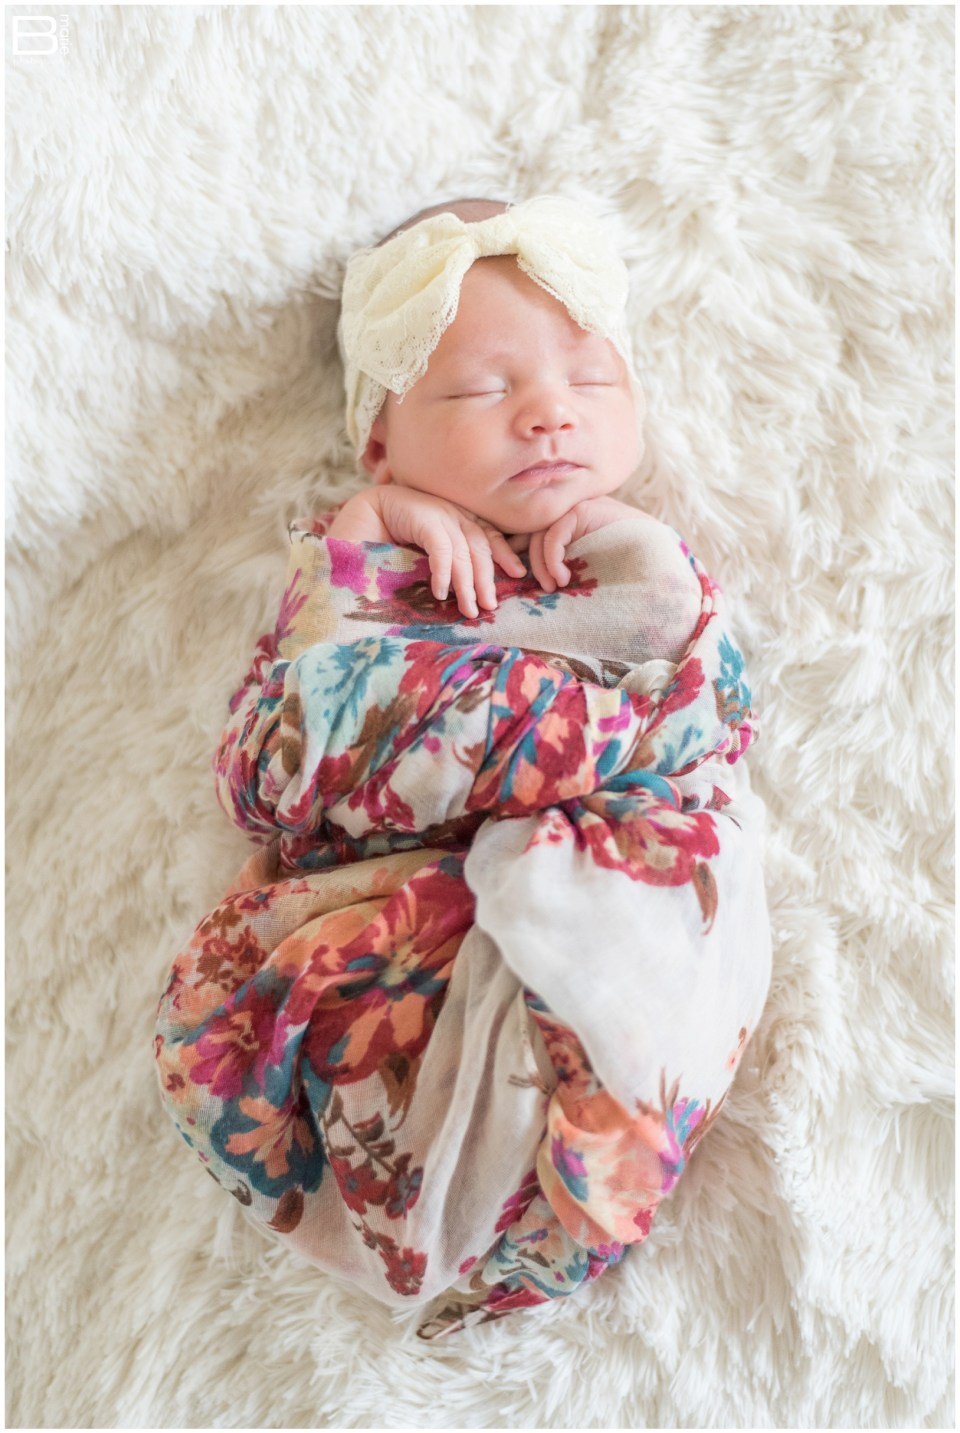 Newborn portraits of baby girl in feminine colors with in-home family portraits